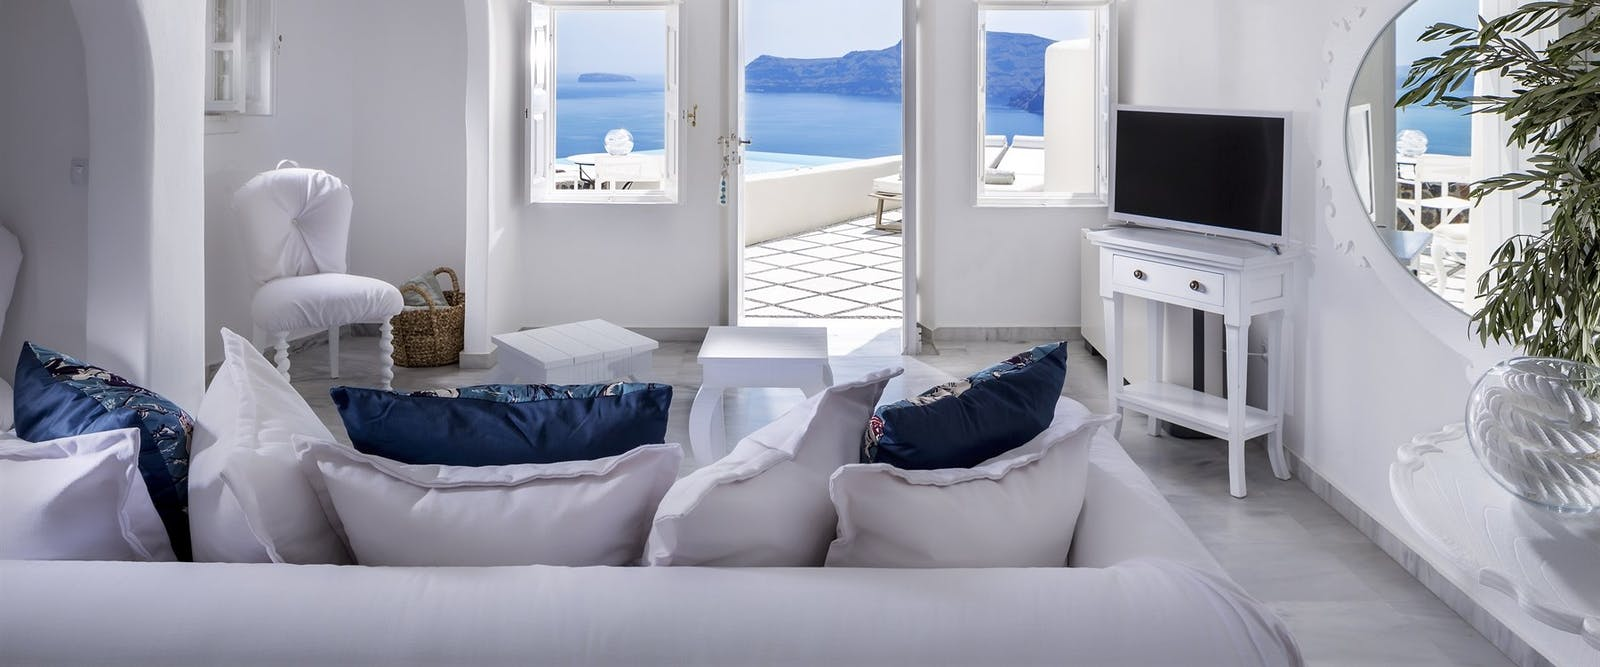 Guest Suite at Canaves Oia Hotel, Santorini, Greece